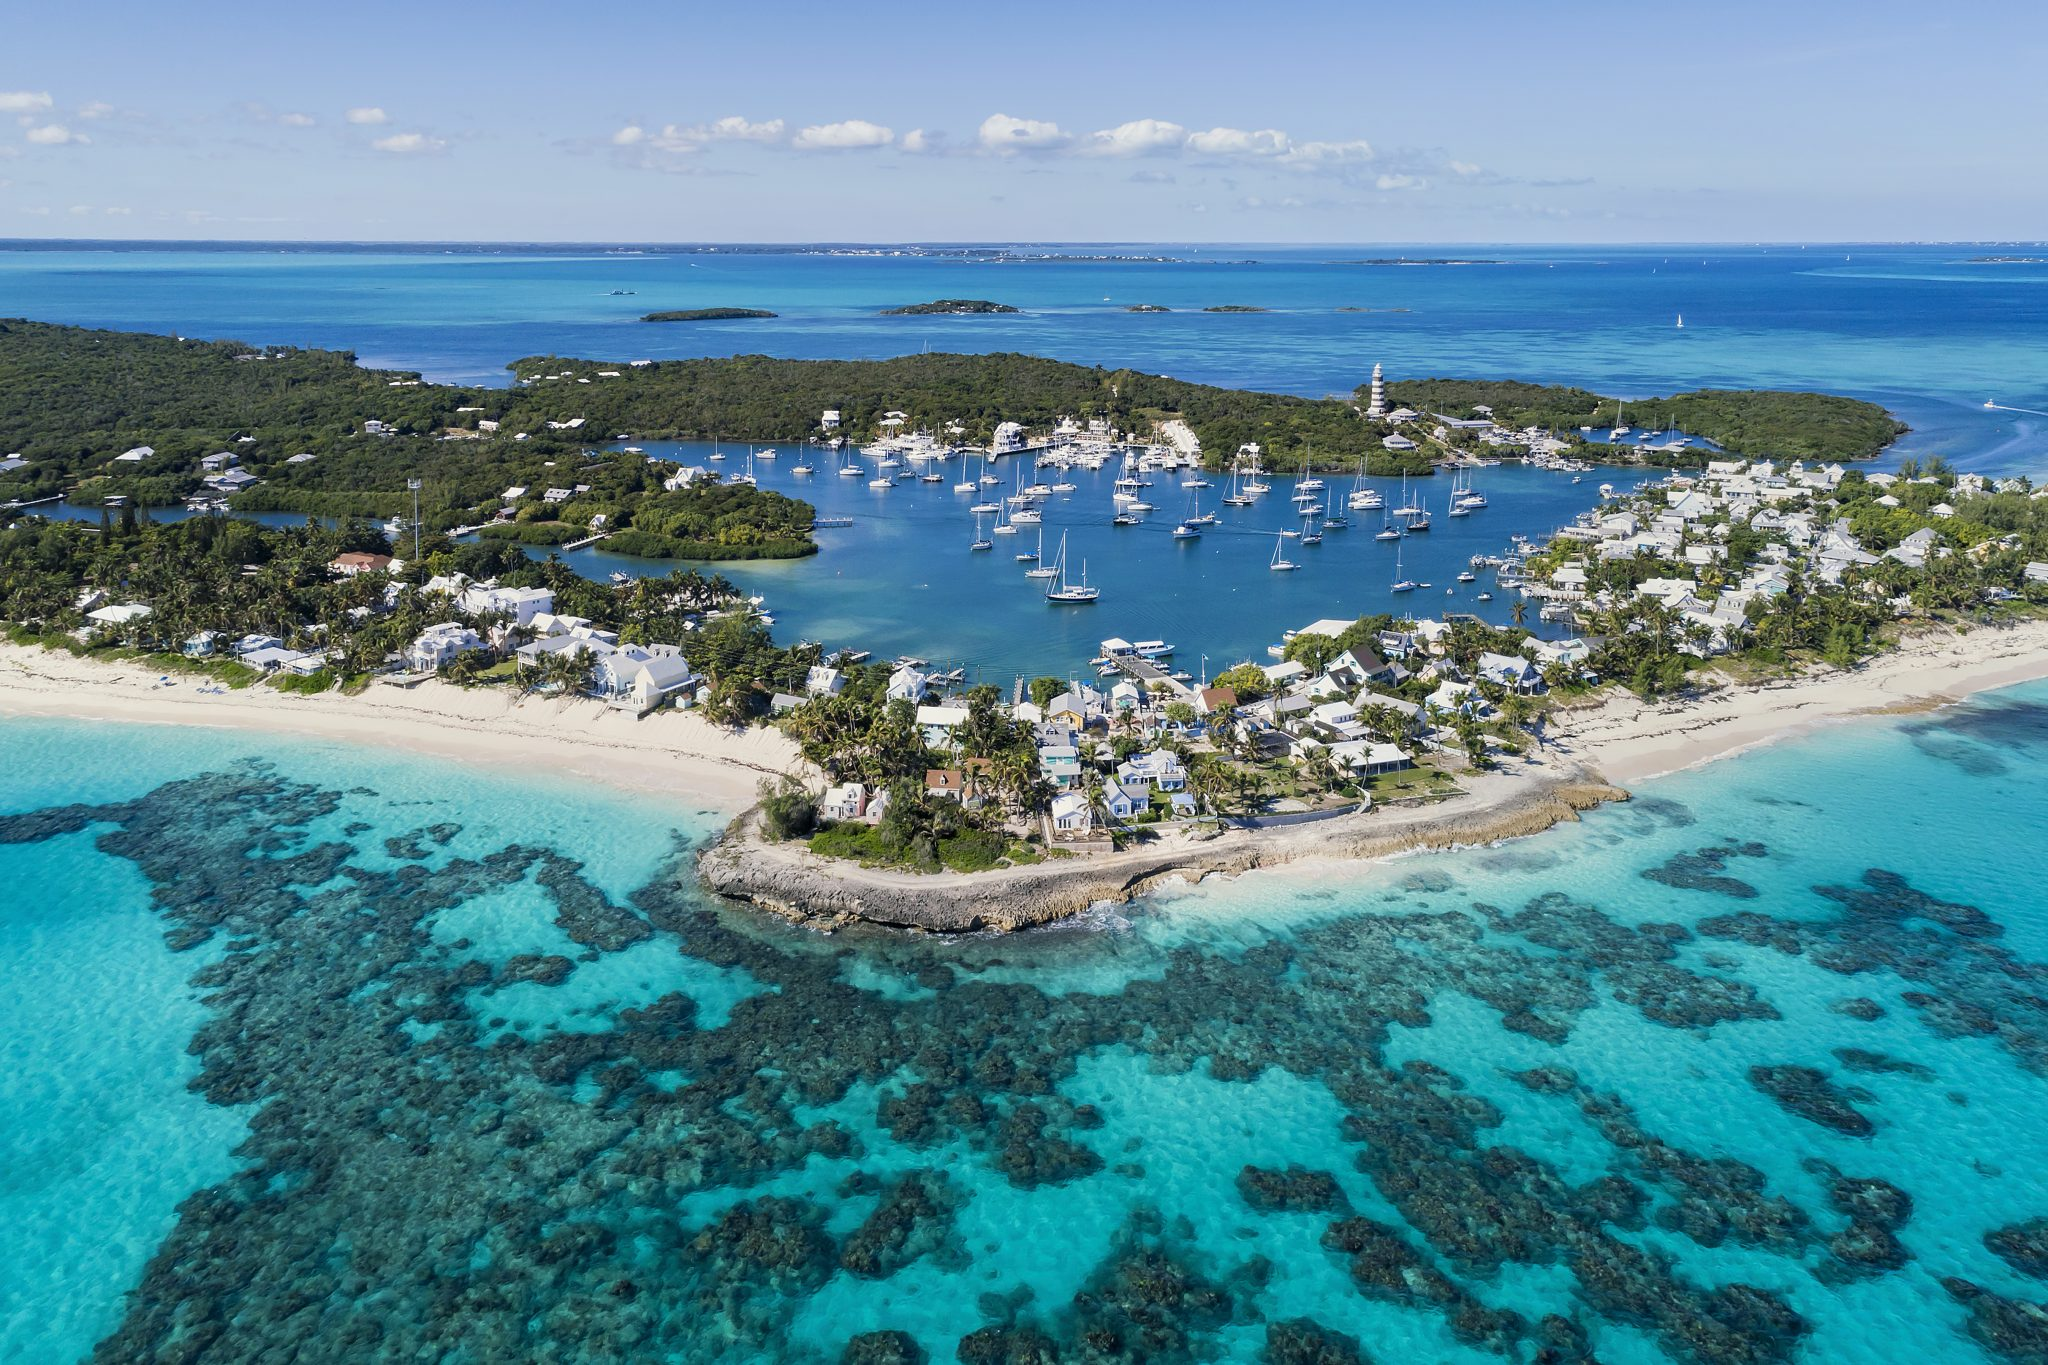 Aerial view of the harbour, beach and lighthouse in Hope Town on Elbow Cay off the island of Abaco, Bahamas.